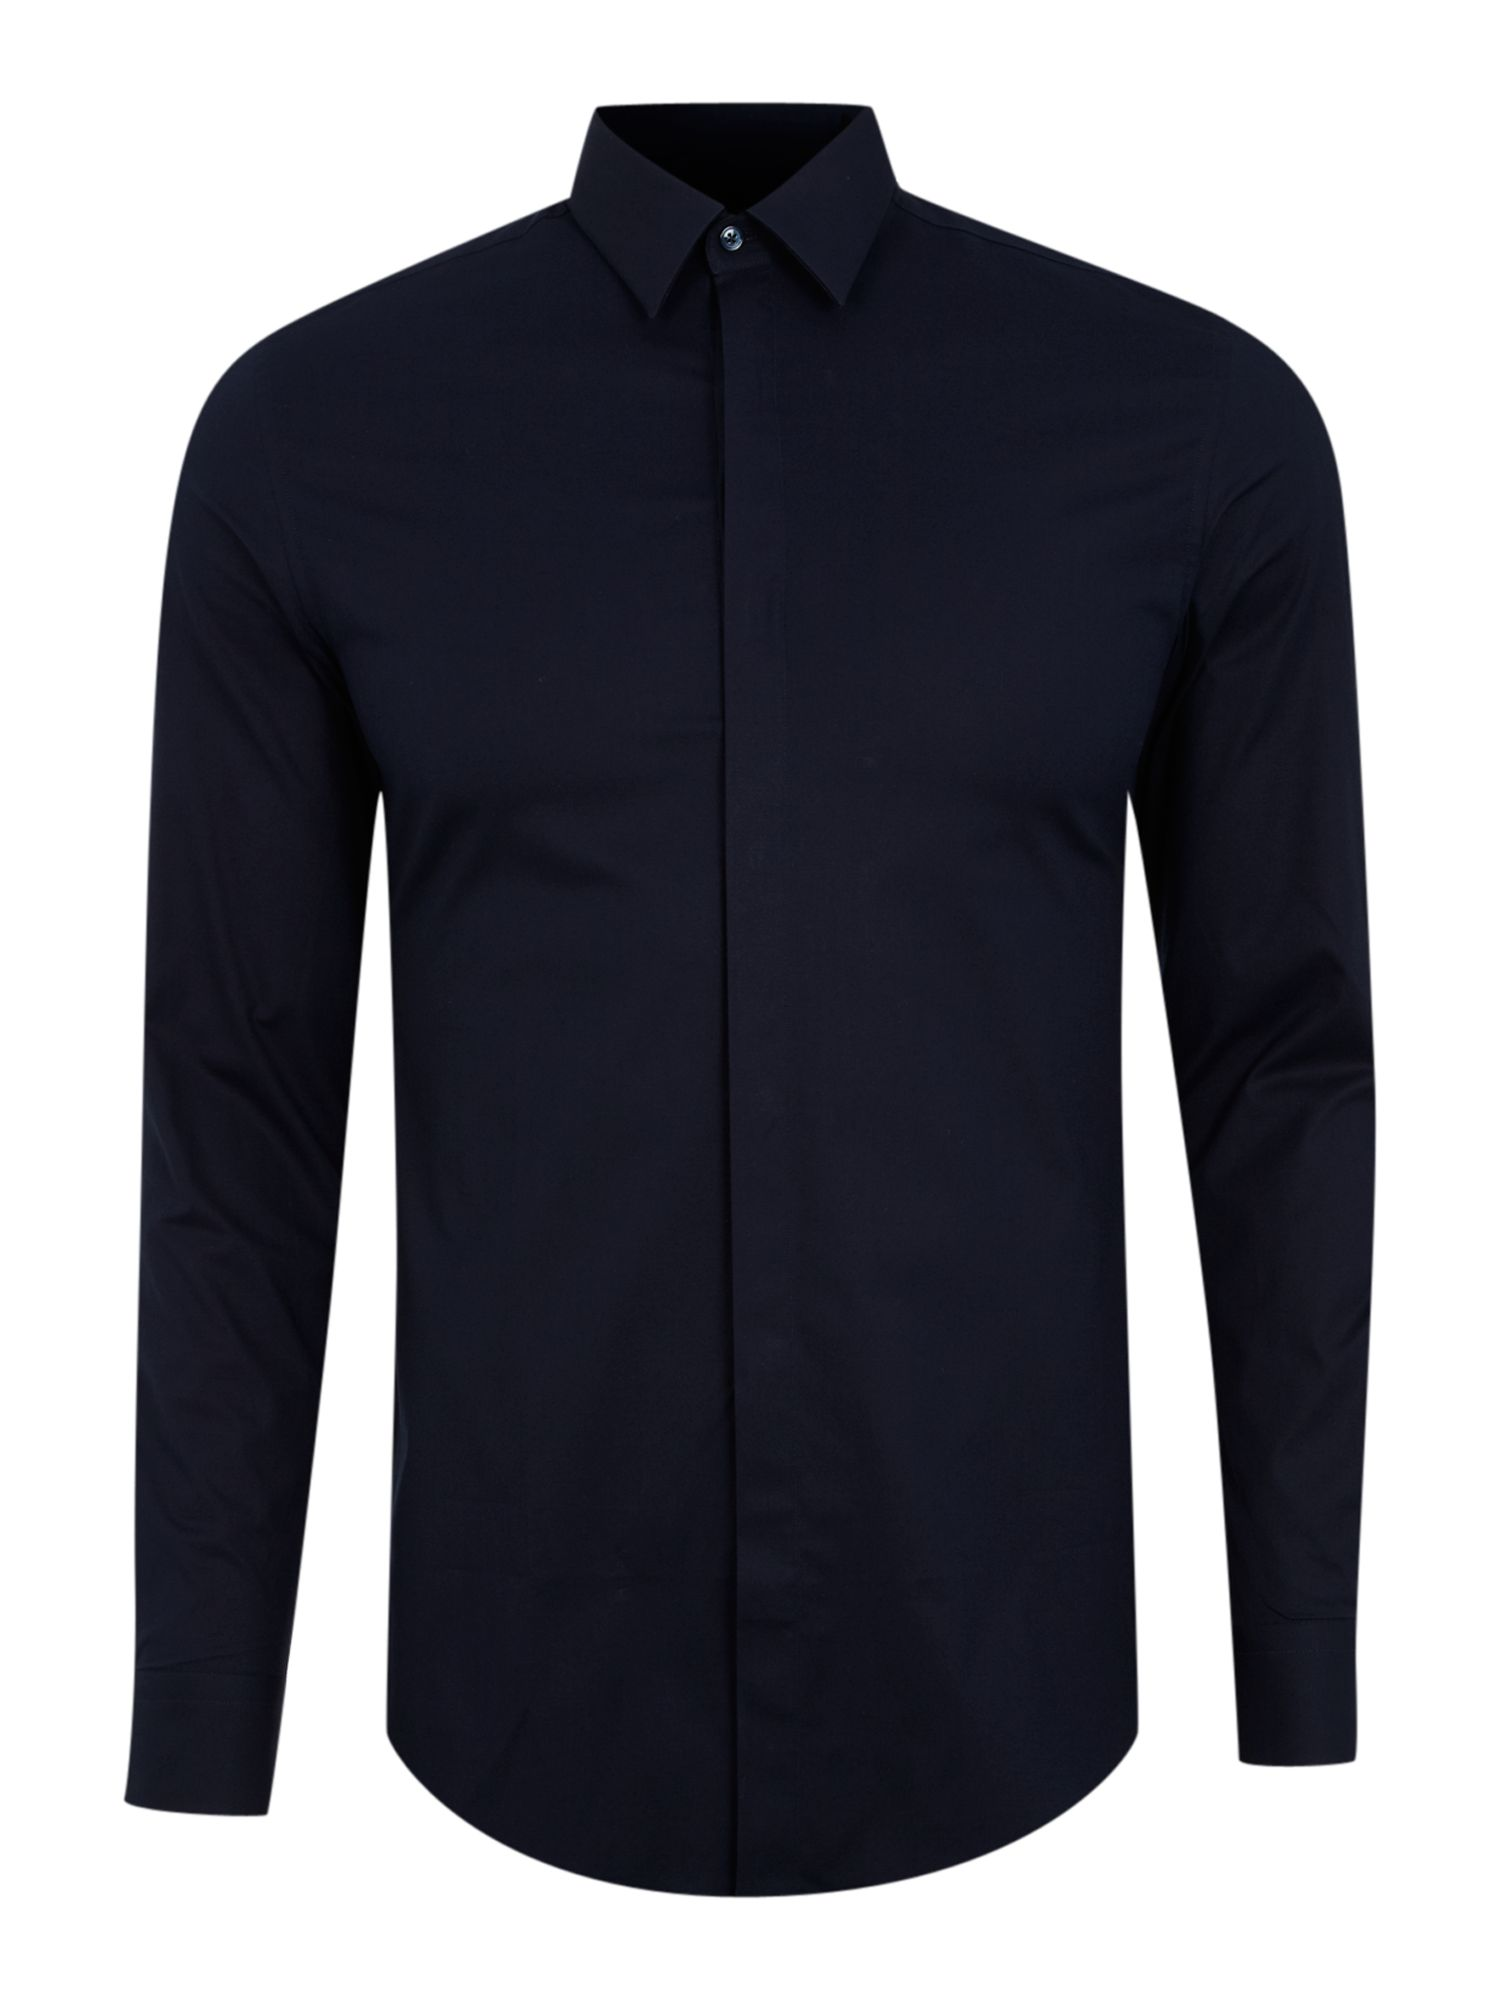 Standard stretch Shirt with Concealed Placket